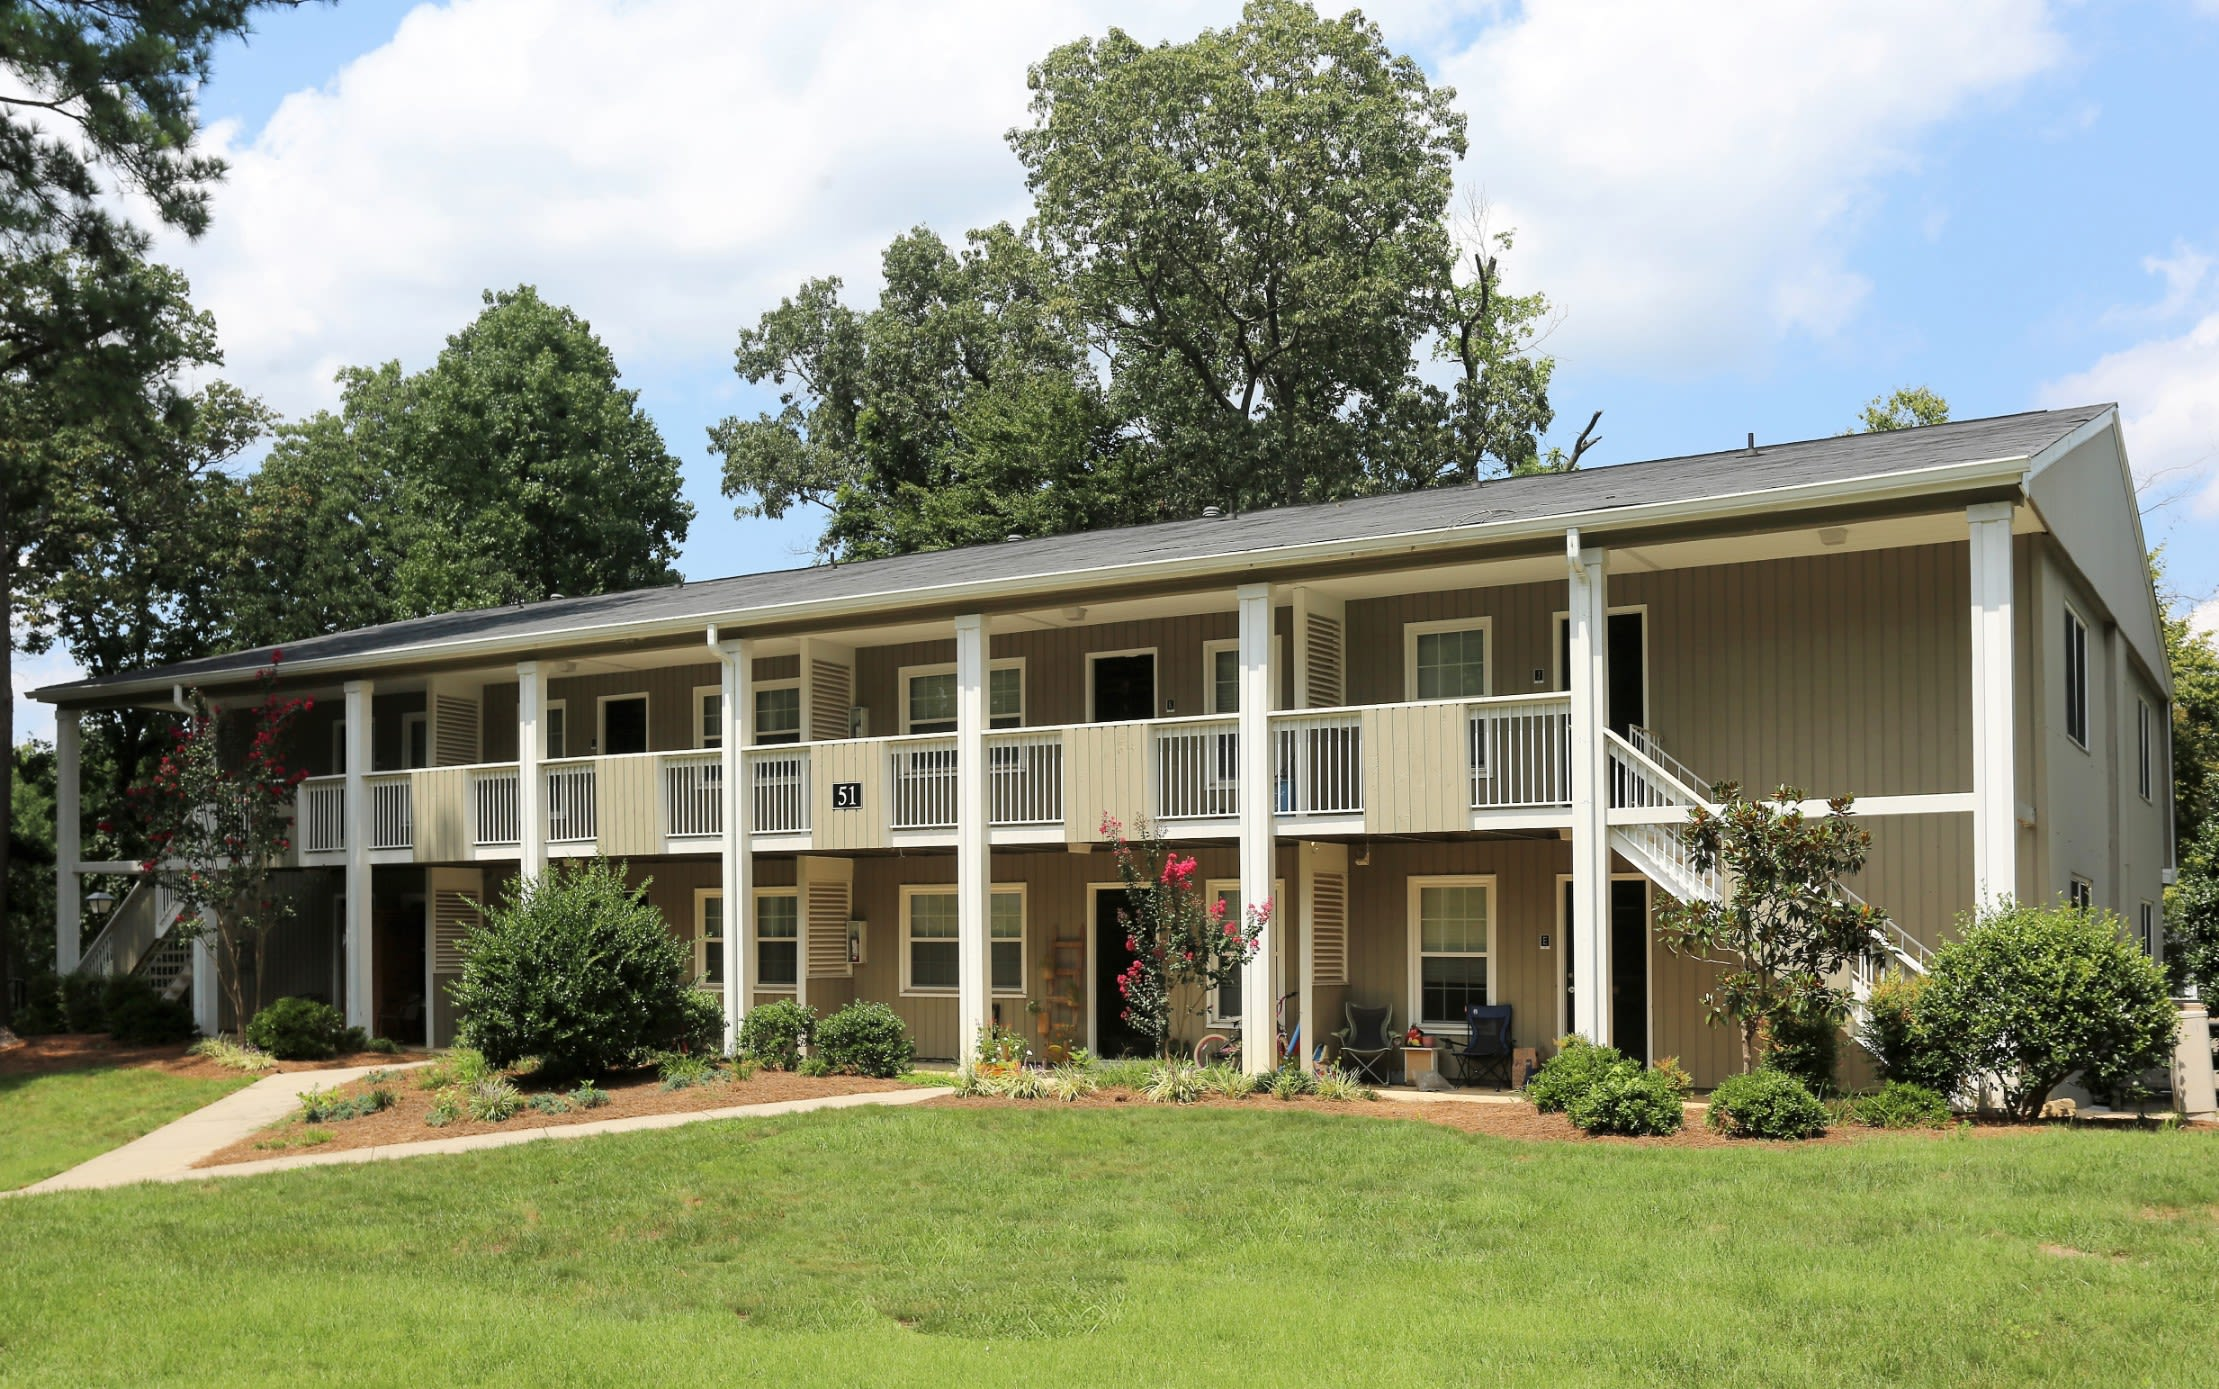 Building Exterior with Landscaping @ Greensboro, NC Apartments